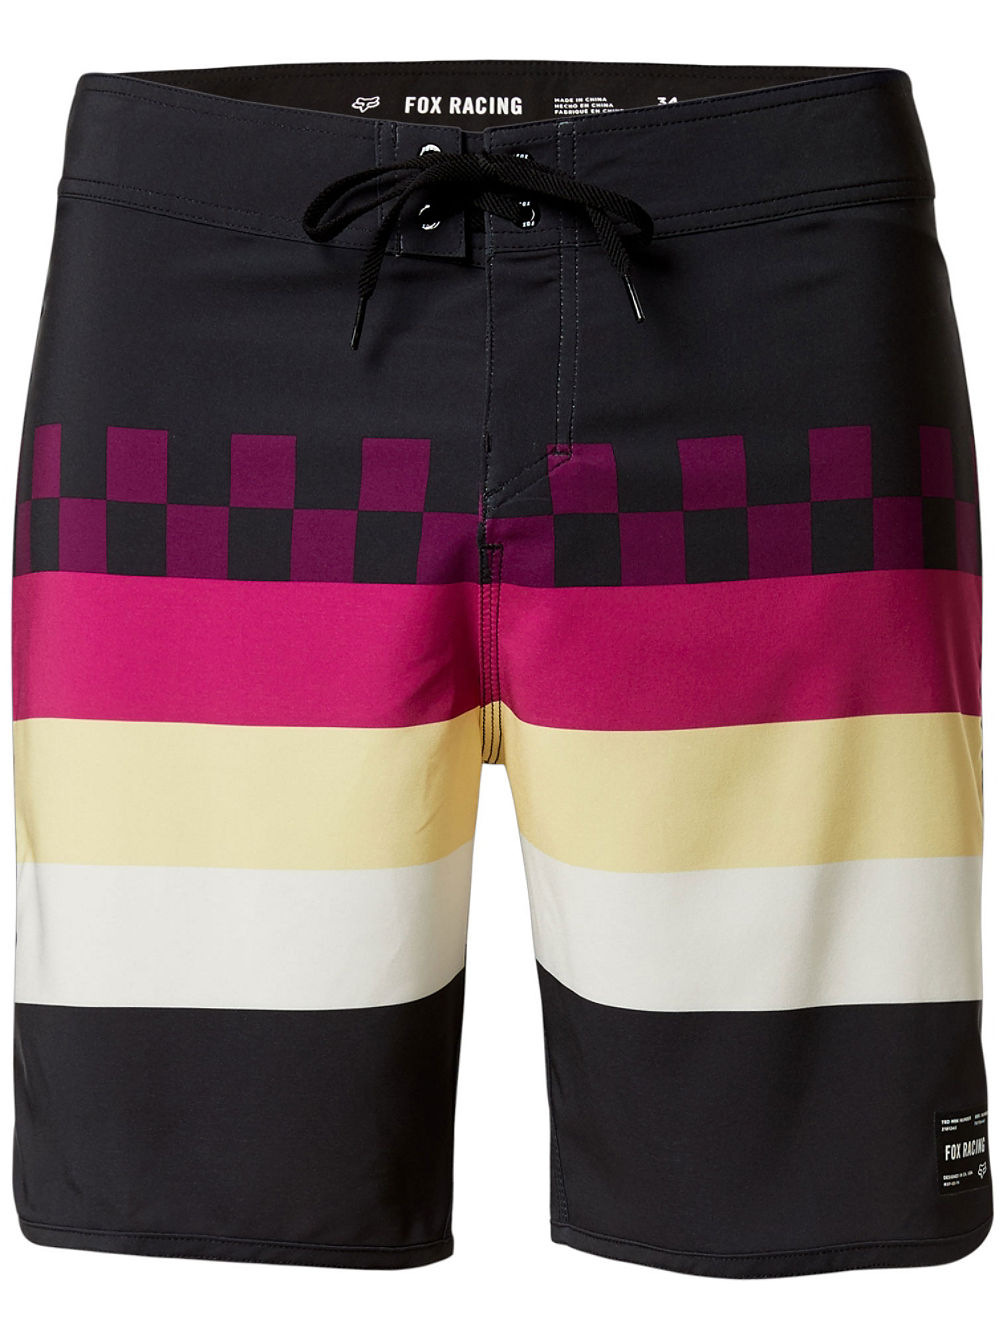 "Reset Stretch FHE 18"" Boardshorts"